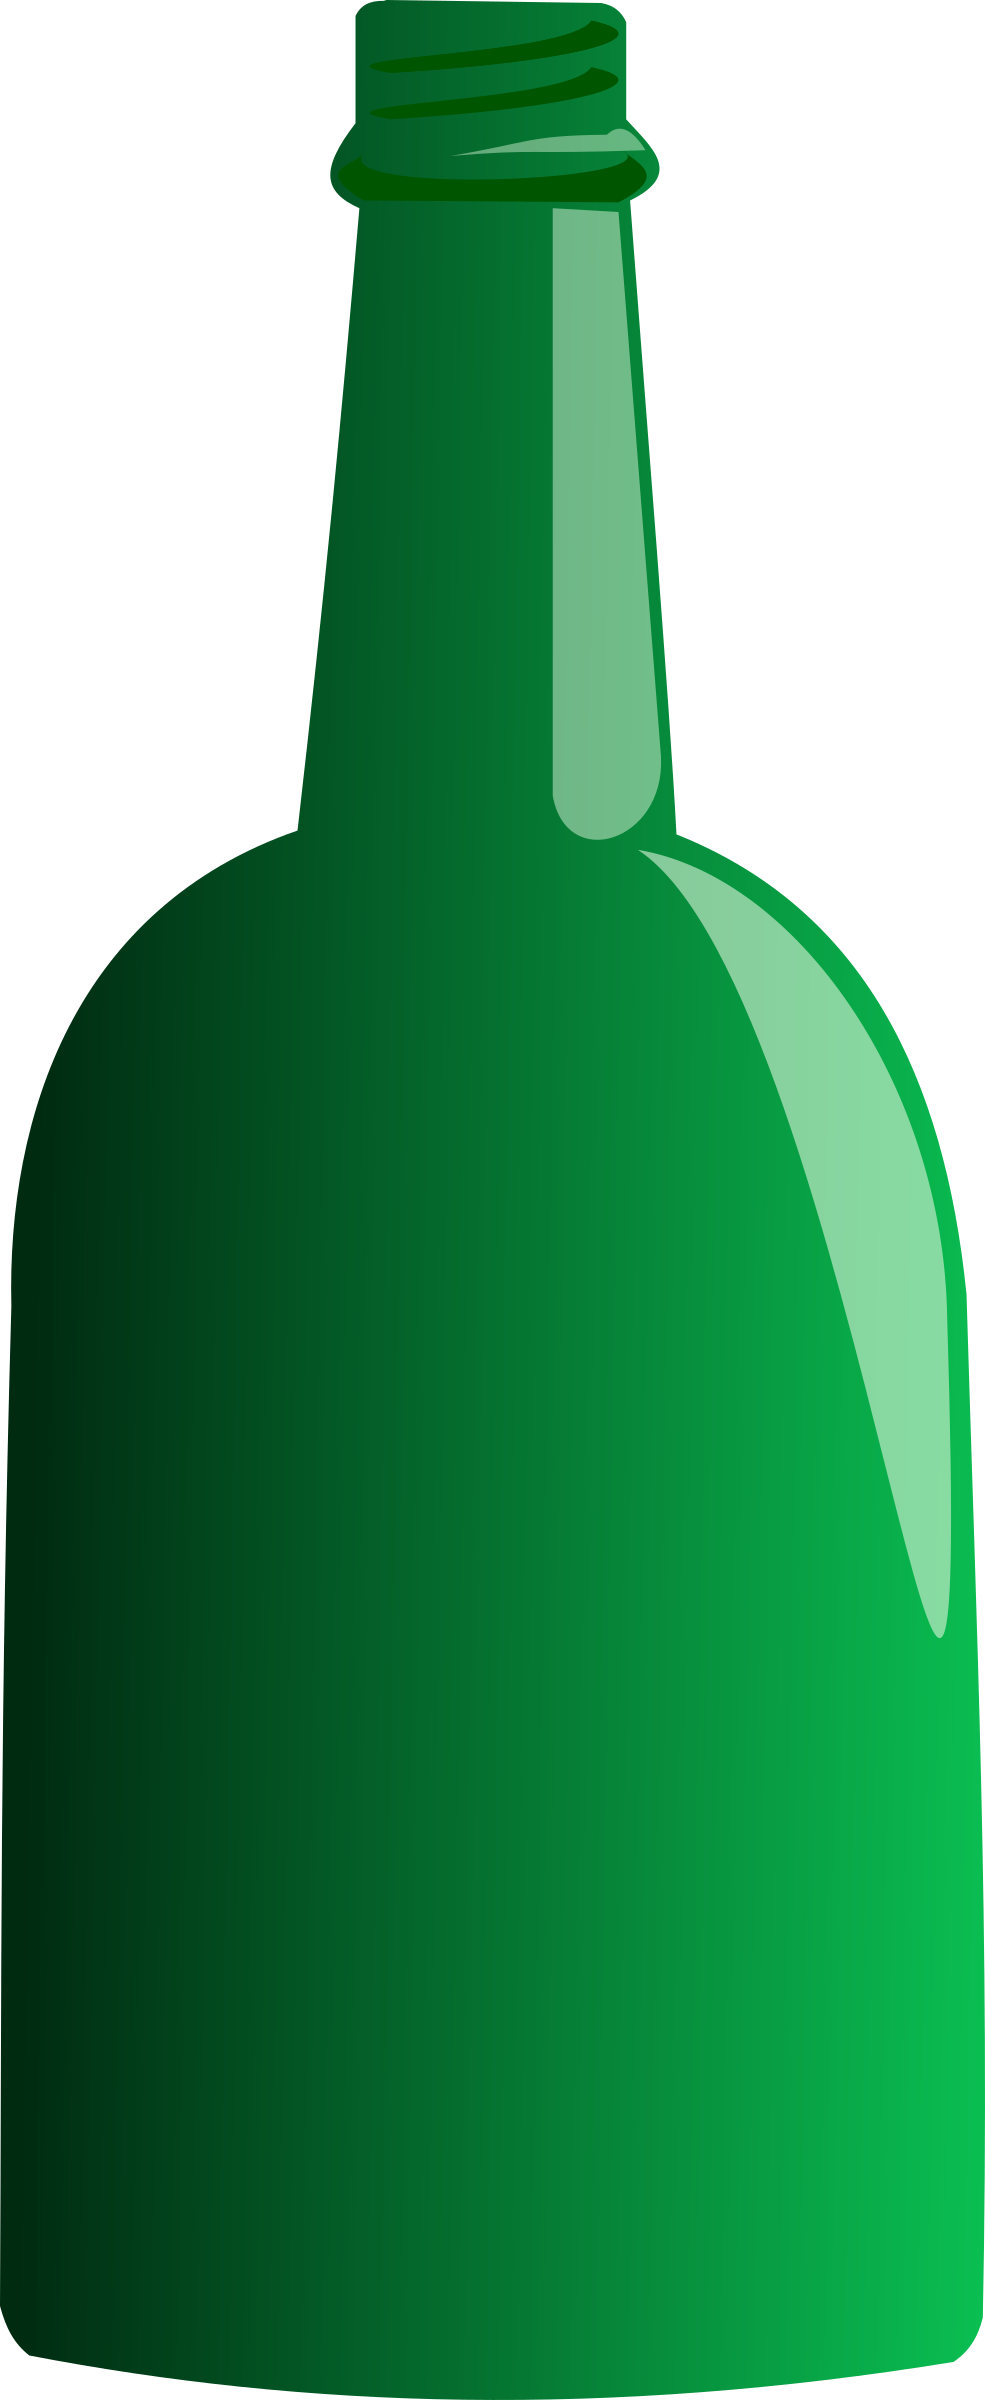 Green Bottle by stevepetmonkey